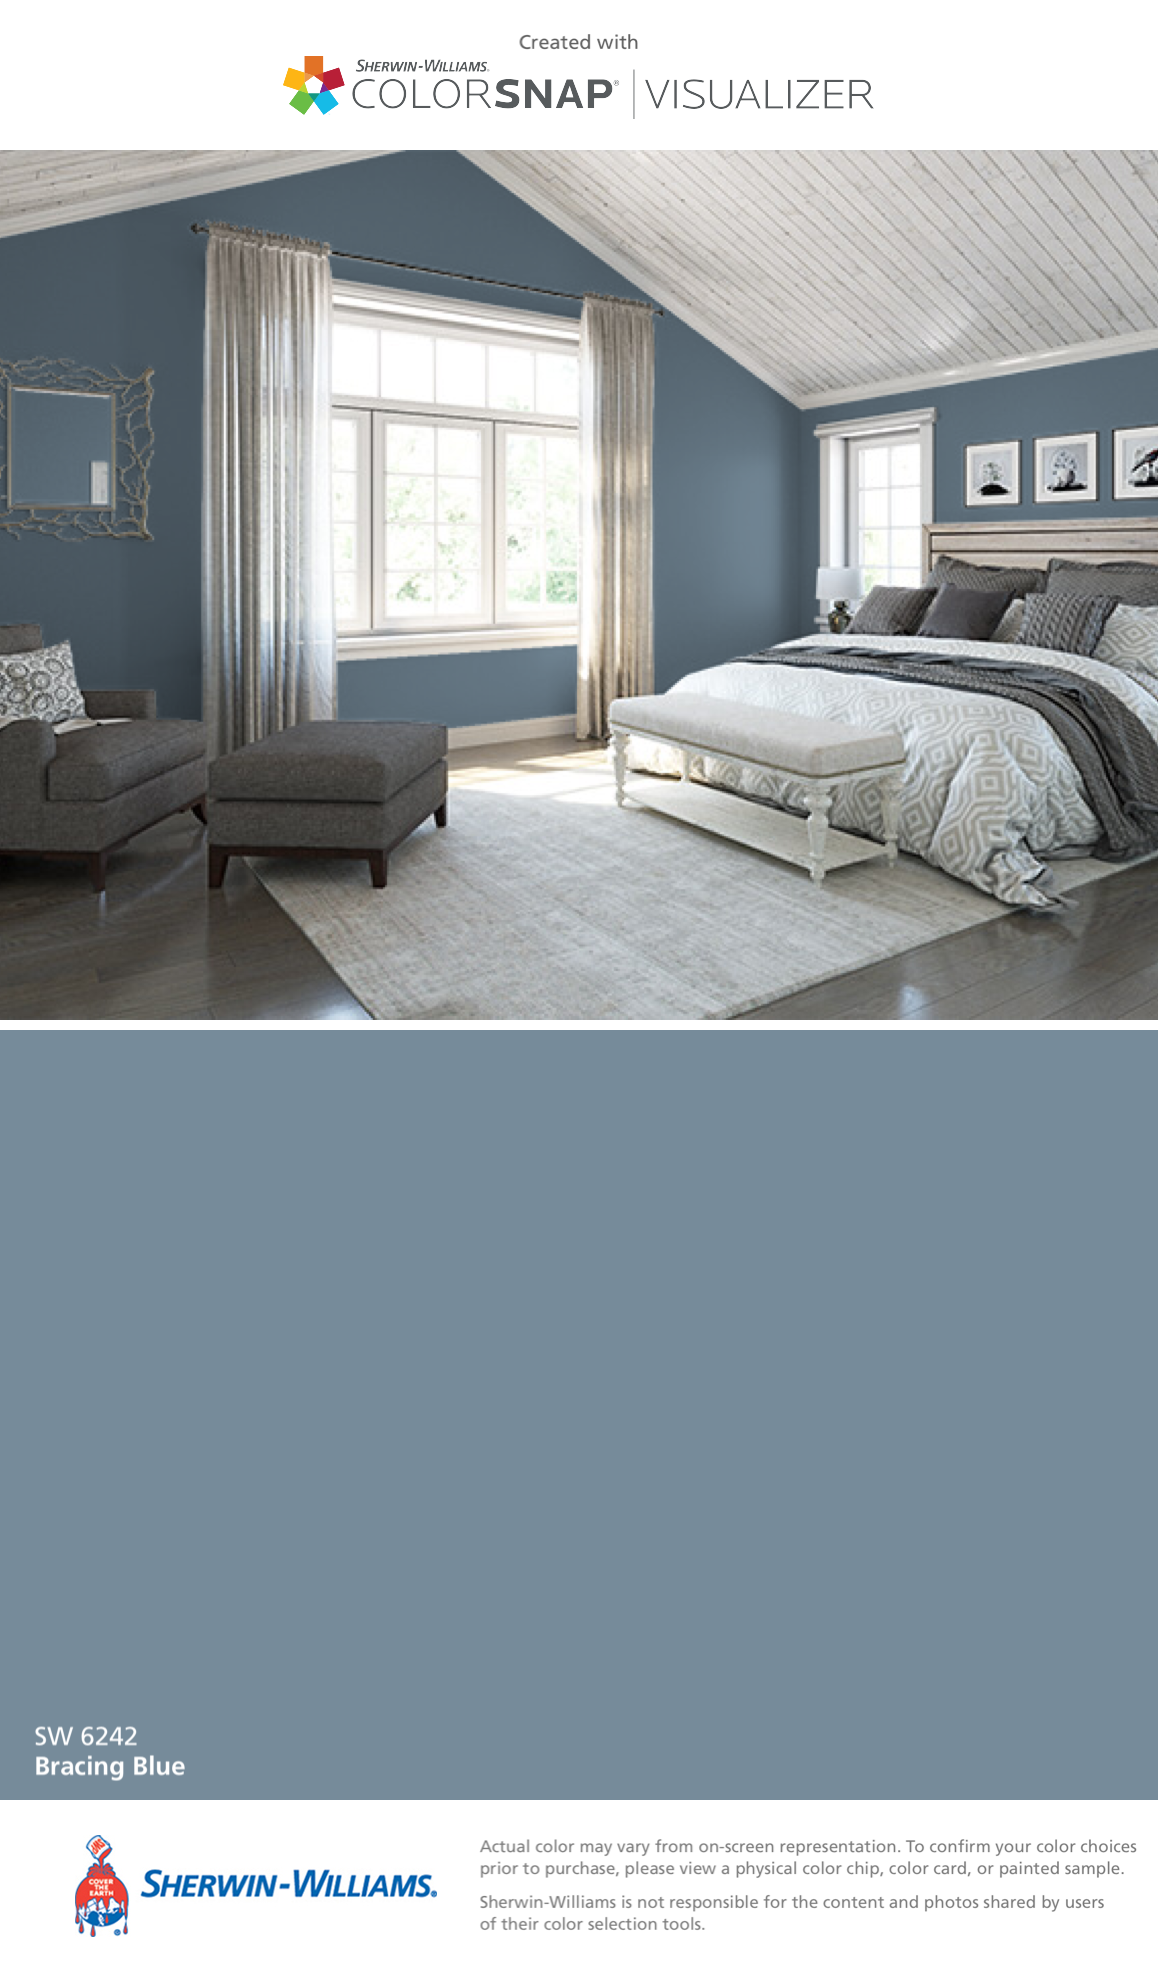 I Found This Color With Colorsnap Visualizer For Iphone By Sherwin Williams Bracing Blue Sw